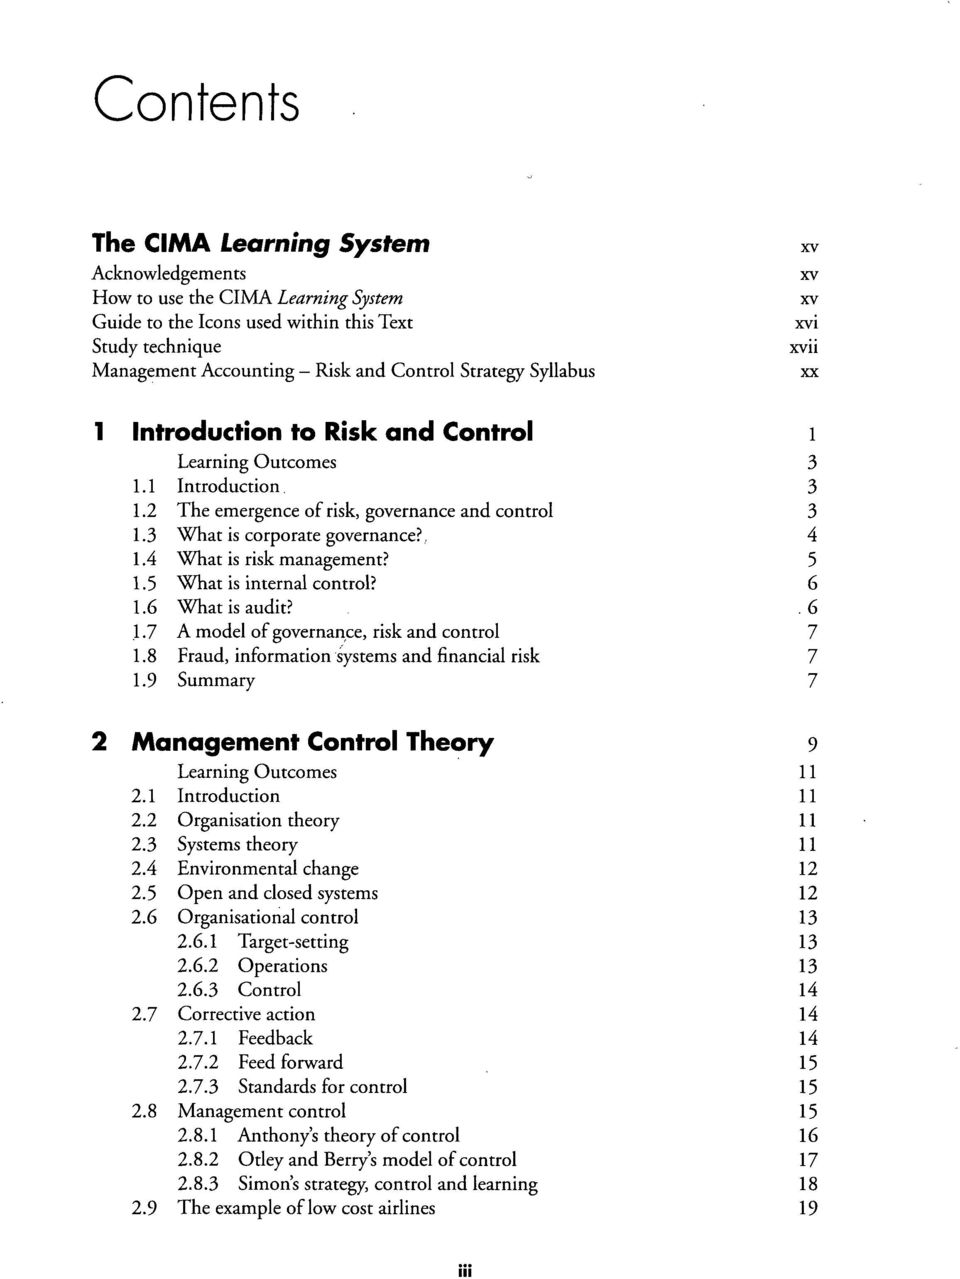 4 What is risk management? 5 1.5 What is internal control? 6 1.6 What is audit?.6 1.7 A model of governance, risk and control 7 1.8 Fraud, information systems and financial risk 7 1.